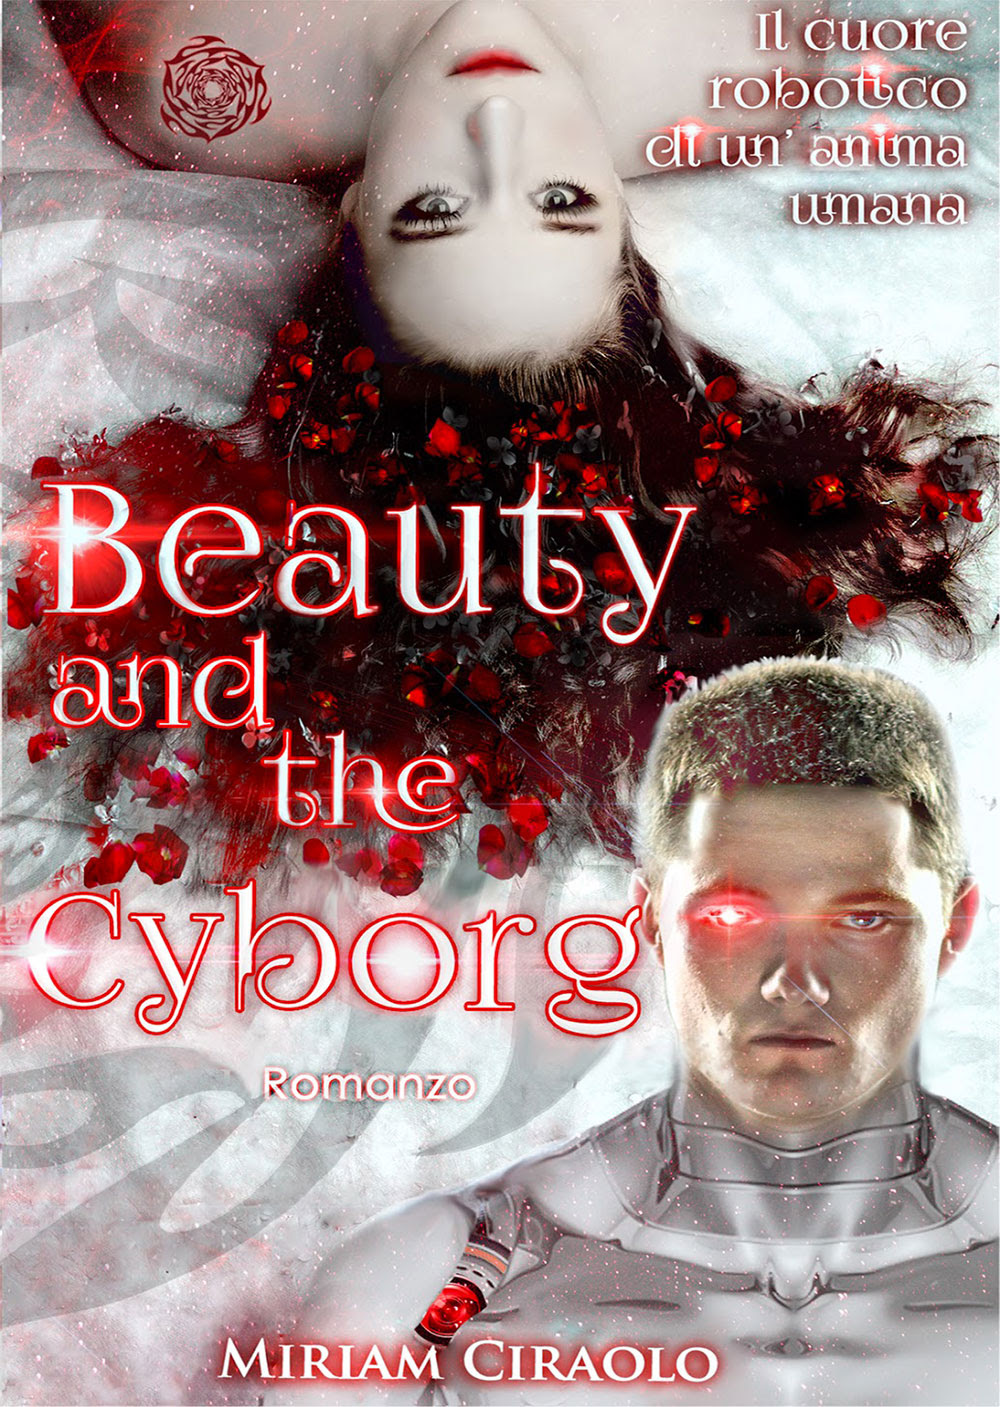 Beauty and the cyborg